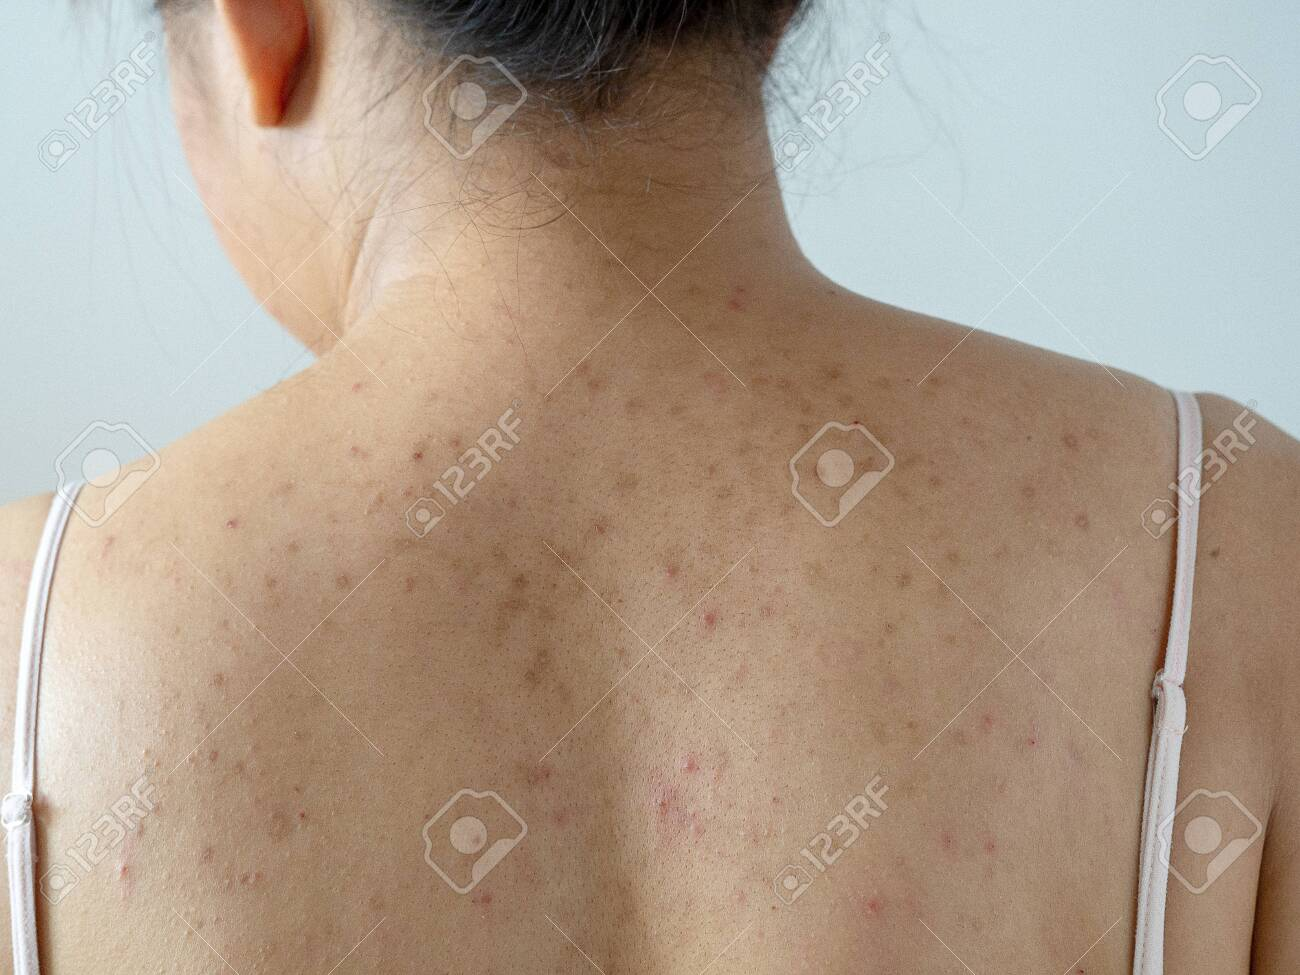 Pimple Acne And Dark Spot On Woman Dry Skin Back From Allergy Stock Photo Picture And Royalty Free Image Image 131808894